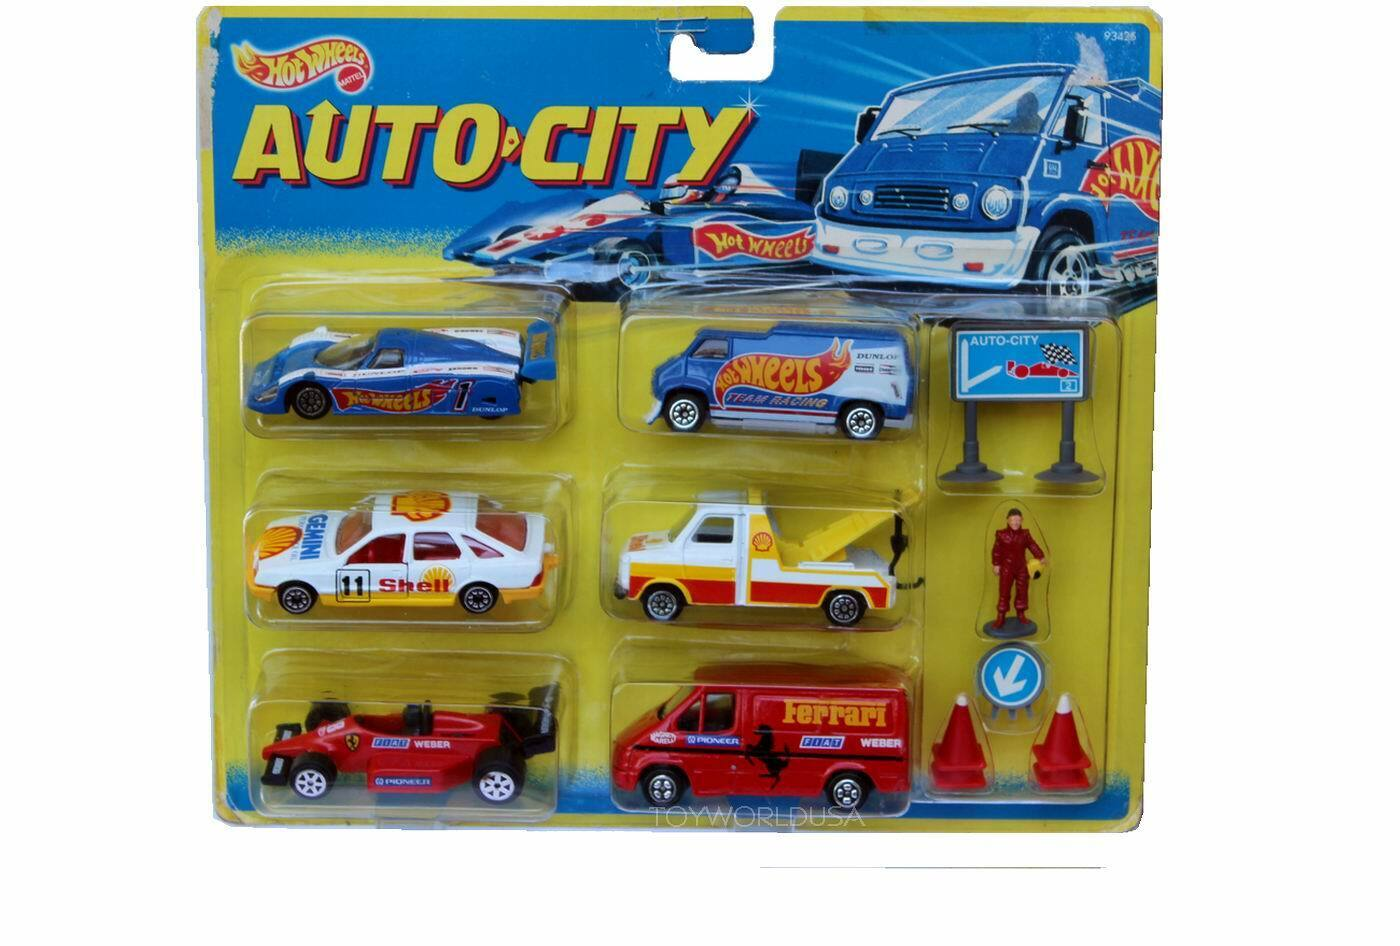 ventas al por mayor Hot Wheels Auto-city 93425 Racing Racing Racing rojoondo Shell Pace Coche & Remolque, Jaguar, Ferrari  selección larga